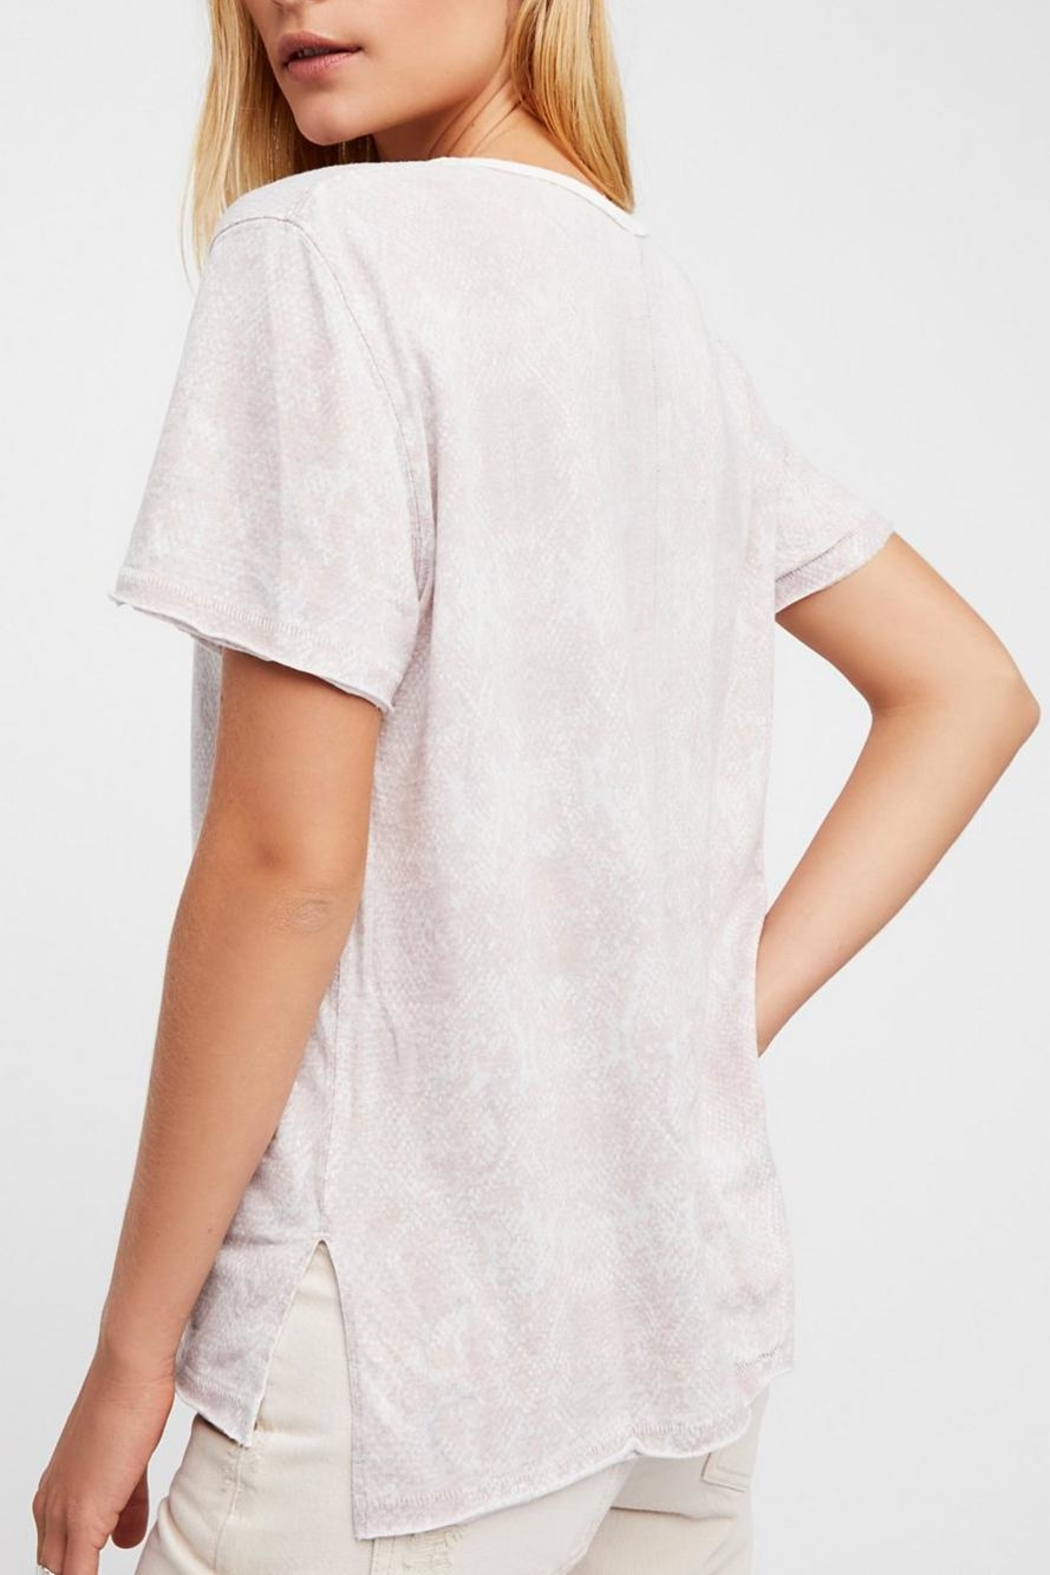 Free People Print Me Top - Front Full Image